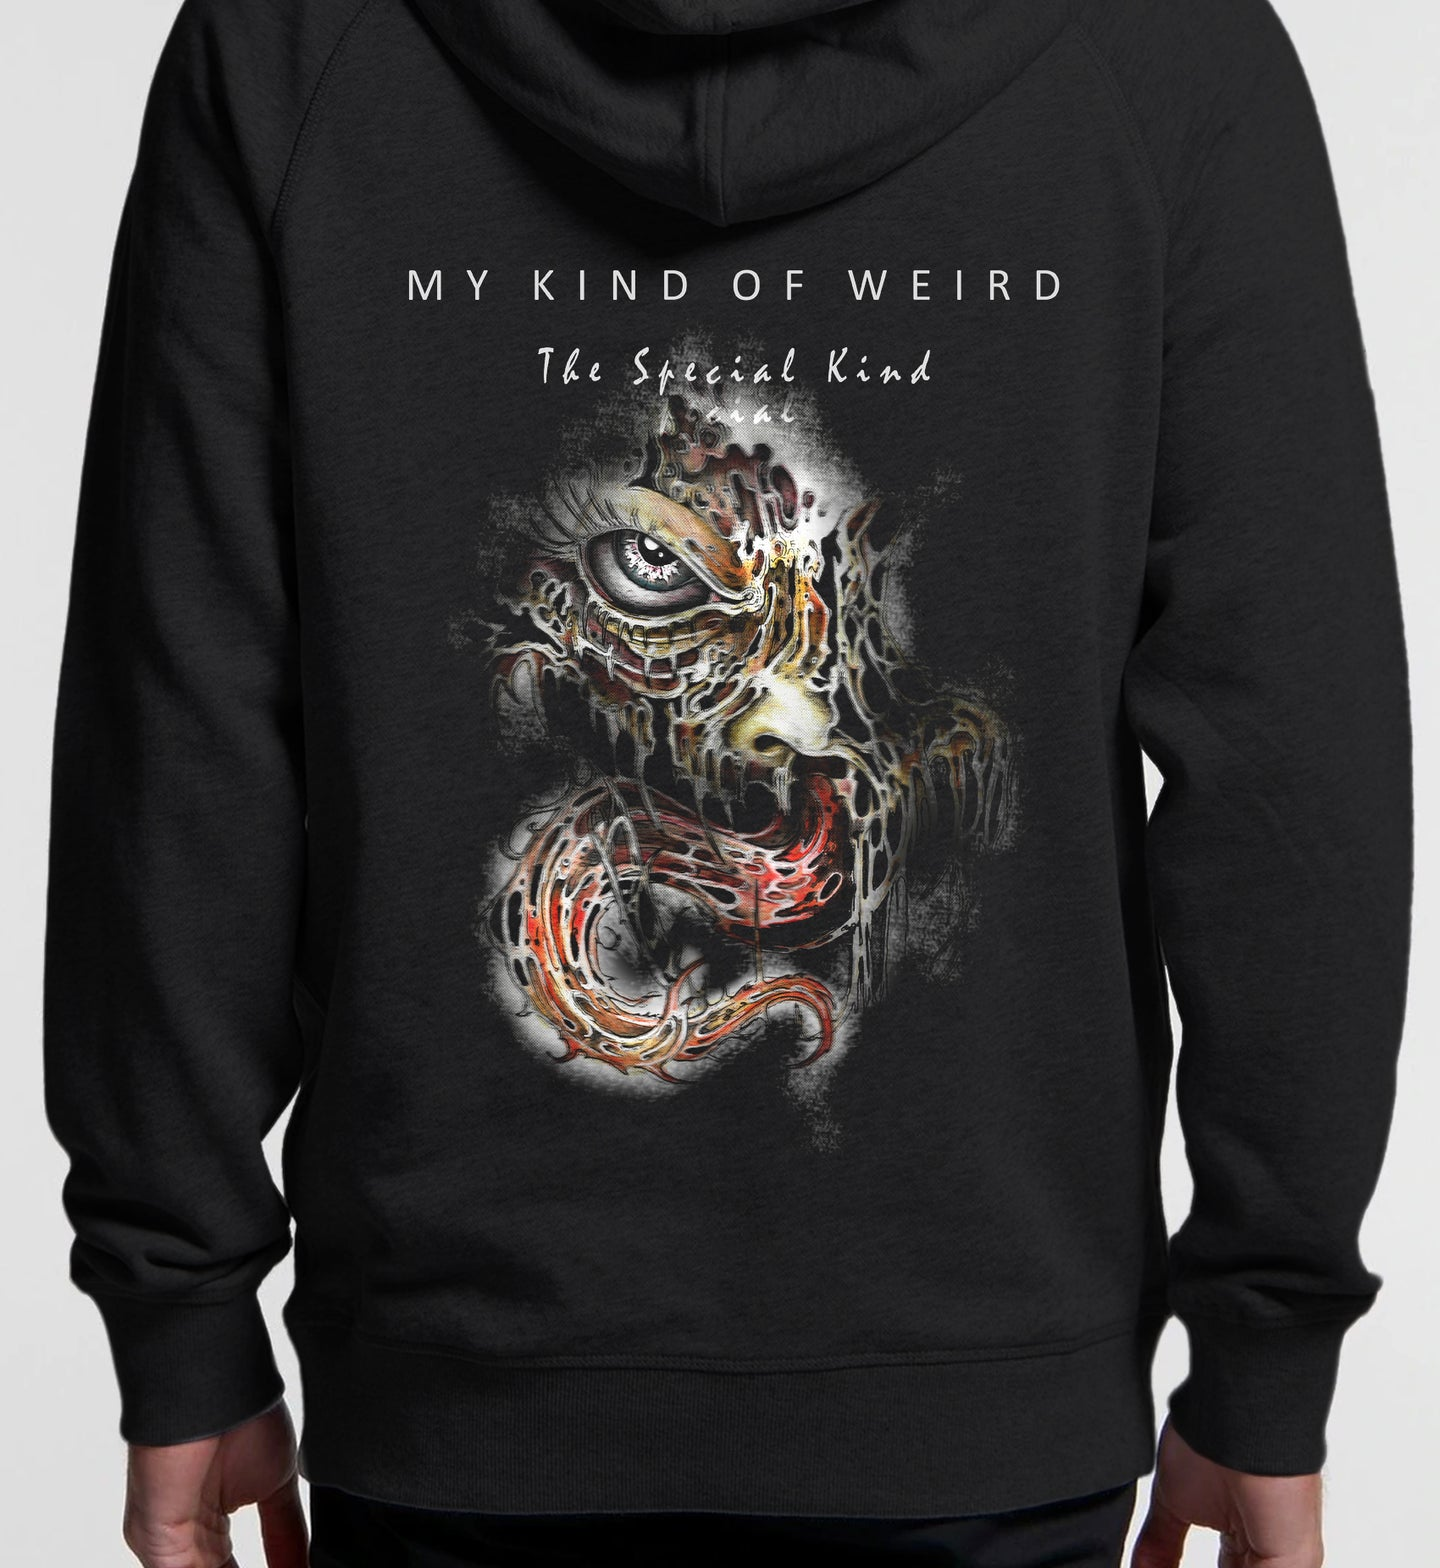 MY KIND OF WEIRD - SHADY IN COLOUR - PREMIUM HOODIE 5120/4210